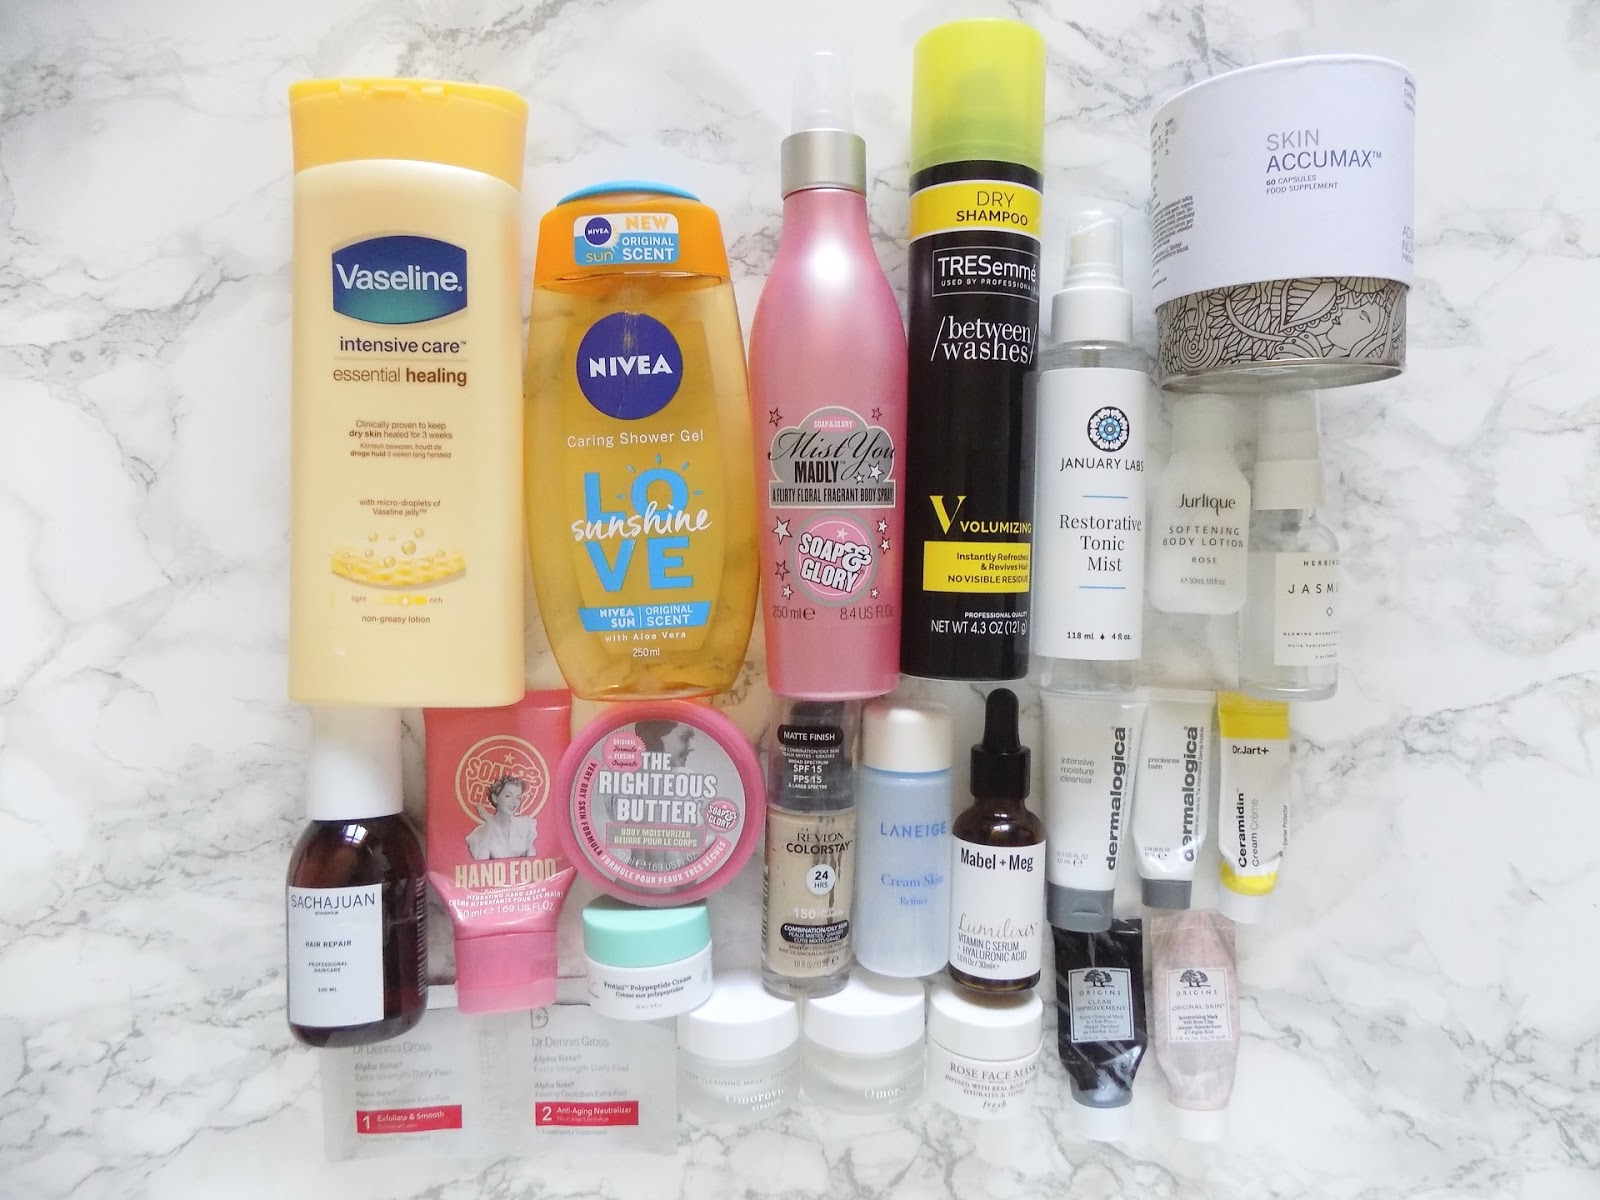 product empties review omorovicza skin accumax mabel + meg